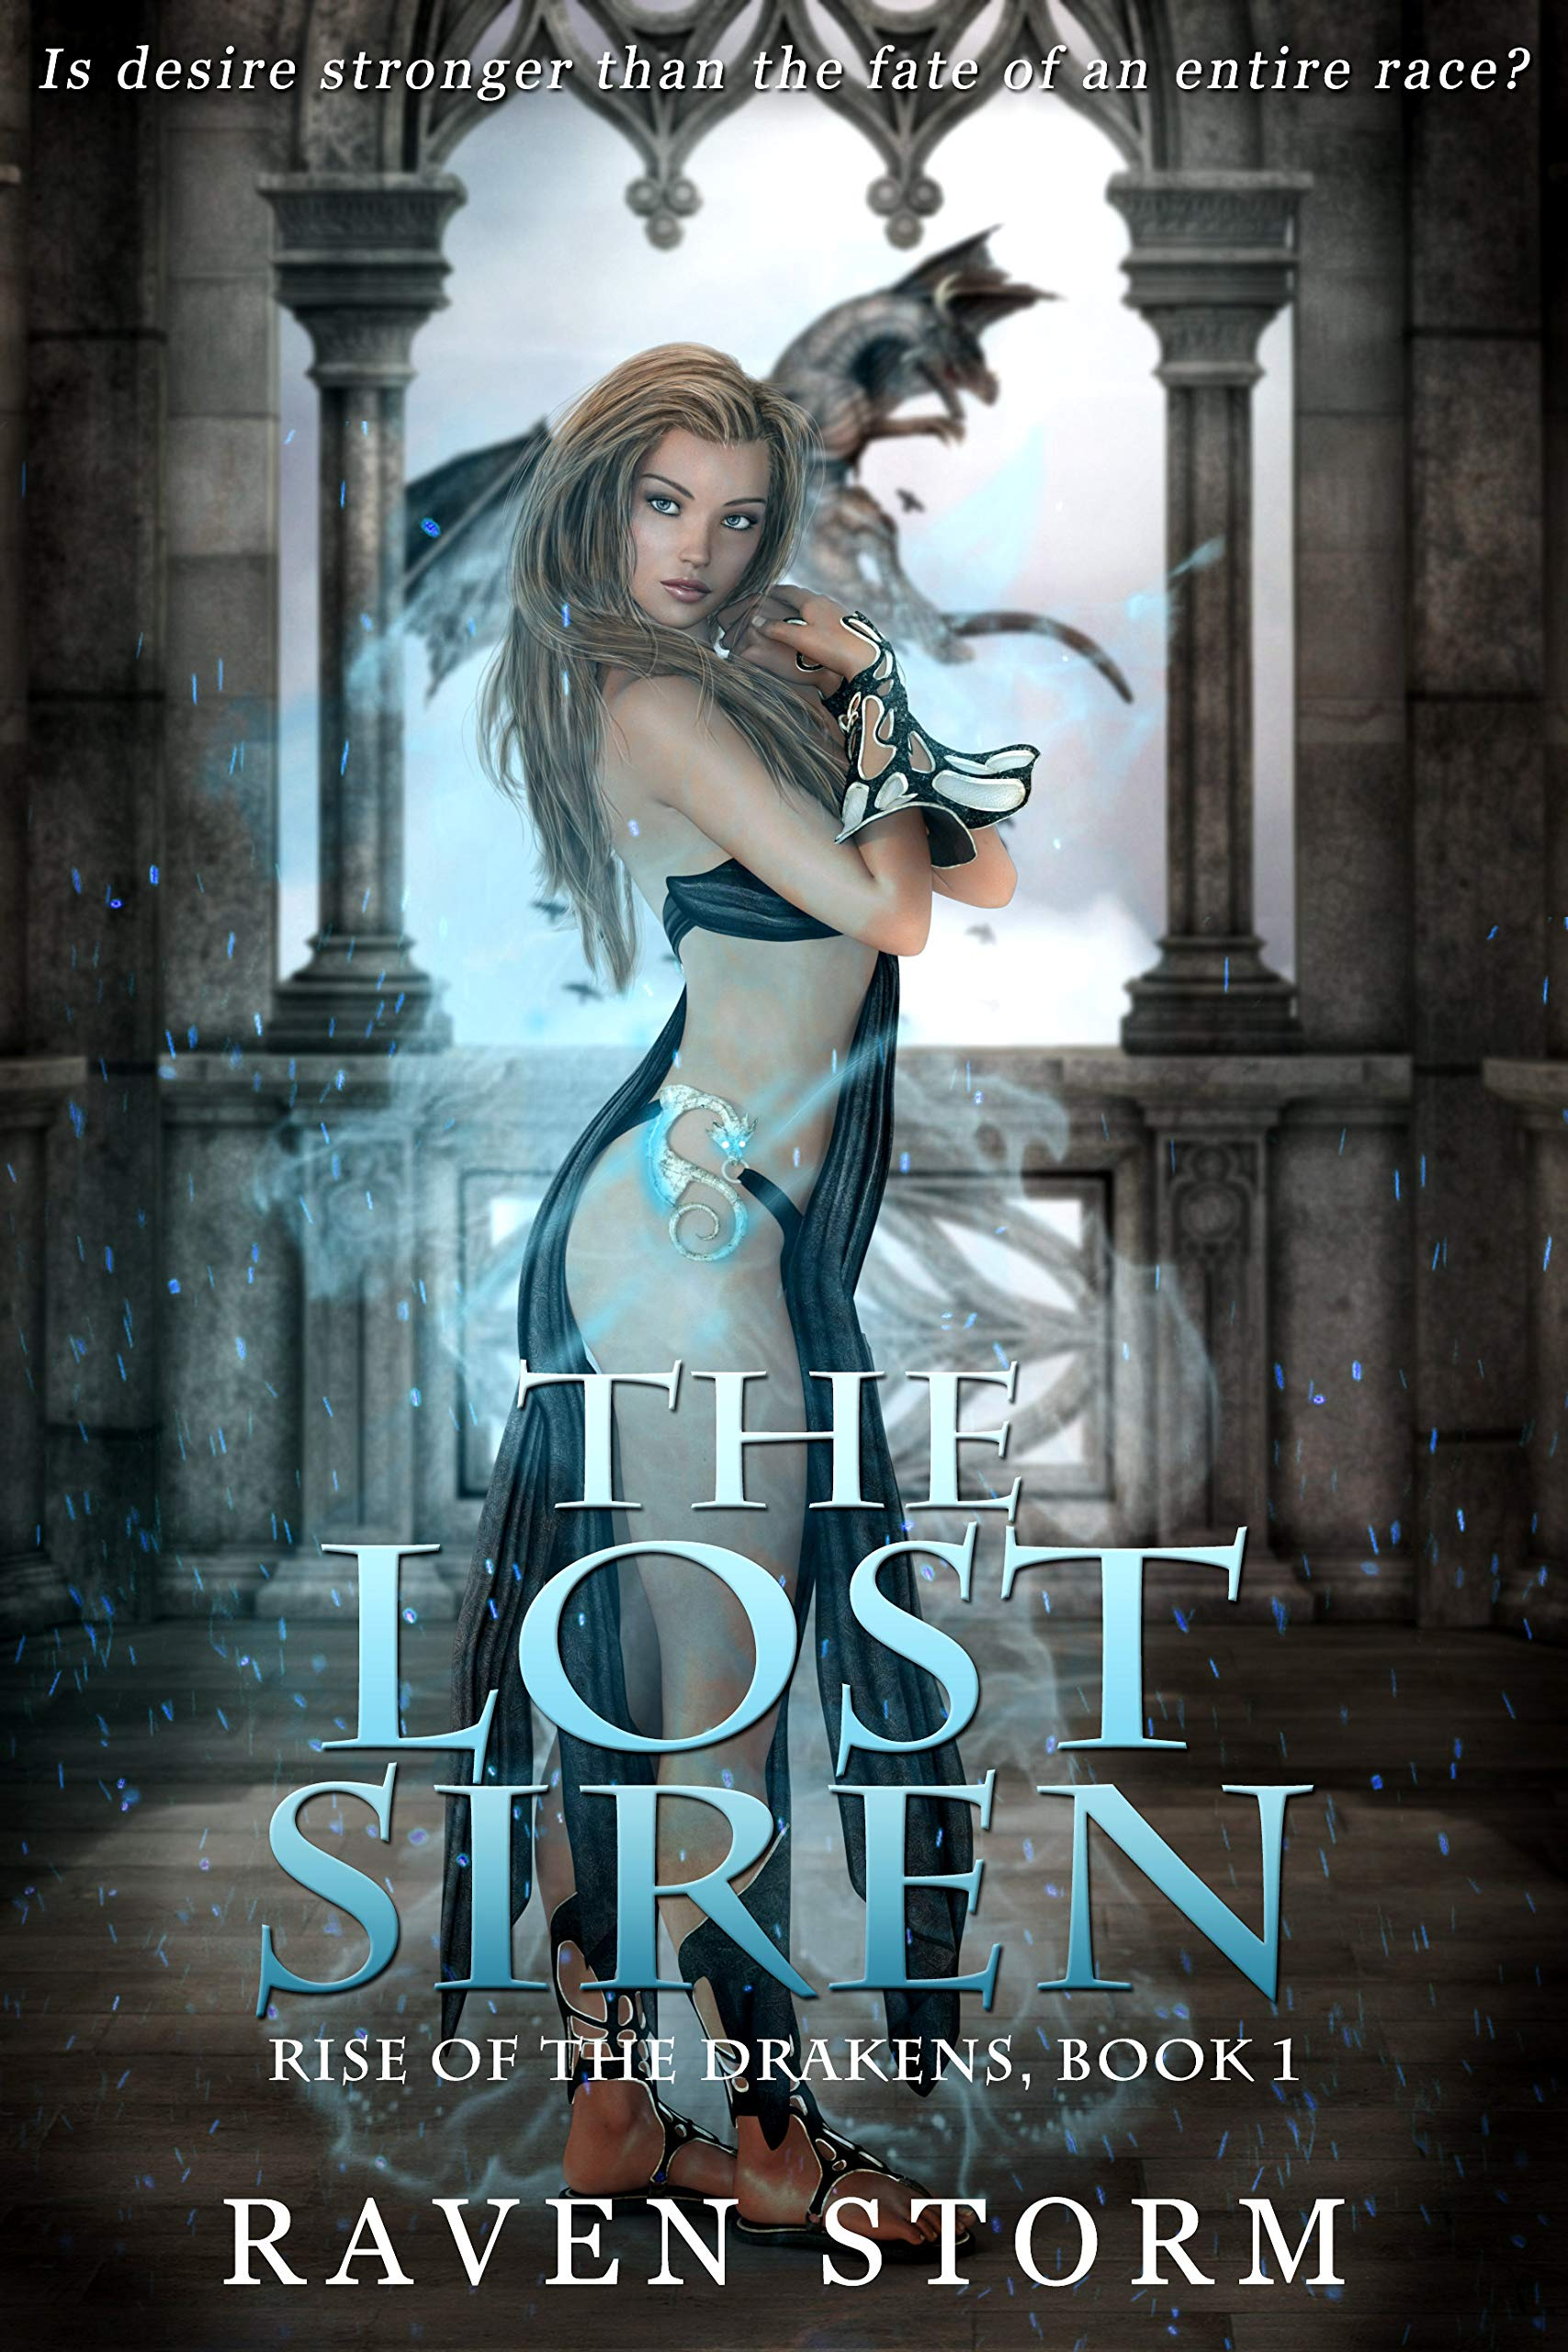 The Lost Siren: Rise of the Drakens Book 1